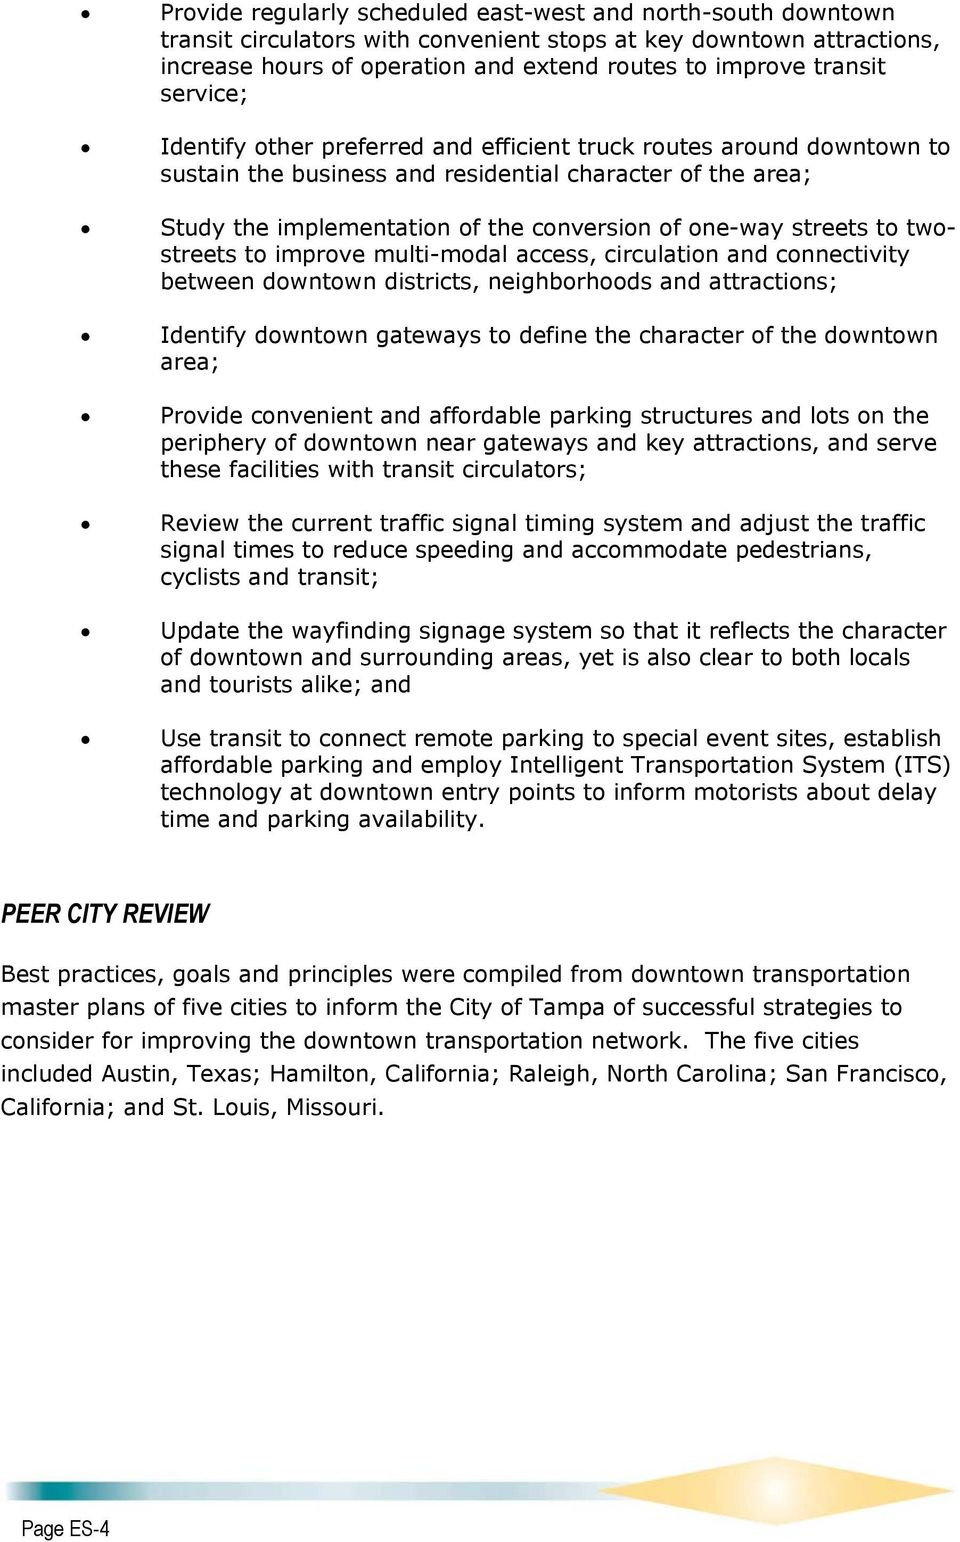 streets to twostreets to improve multi-modal access, circulation and connectivity between downtown districts, neighborhoods and attractions; Identify downtown gateways to define the character of the